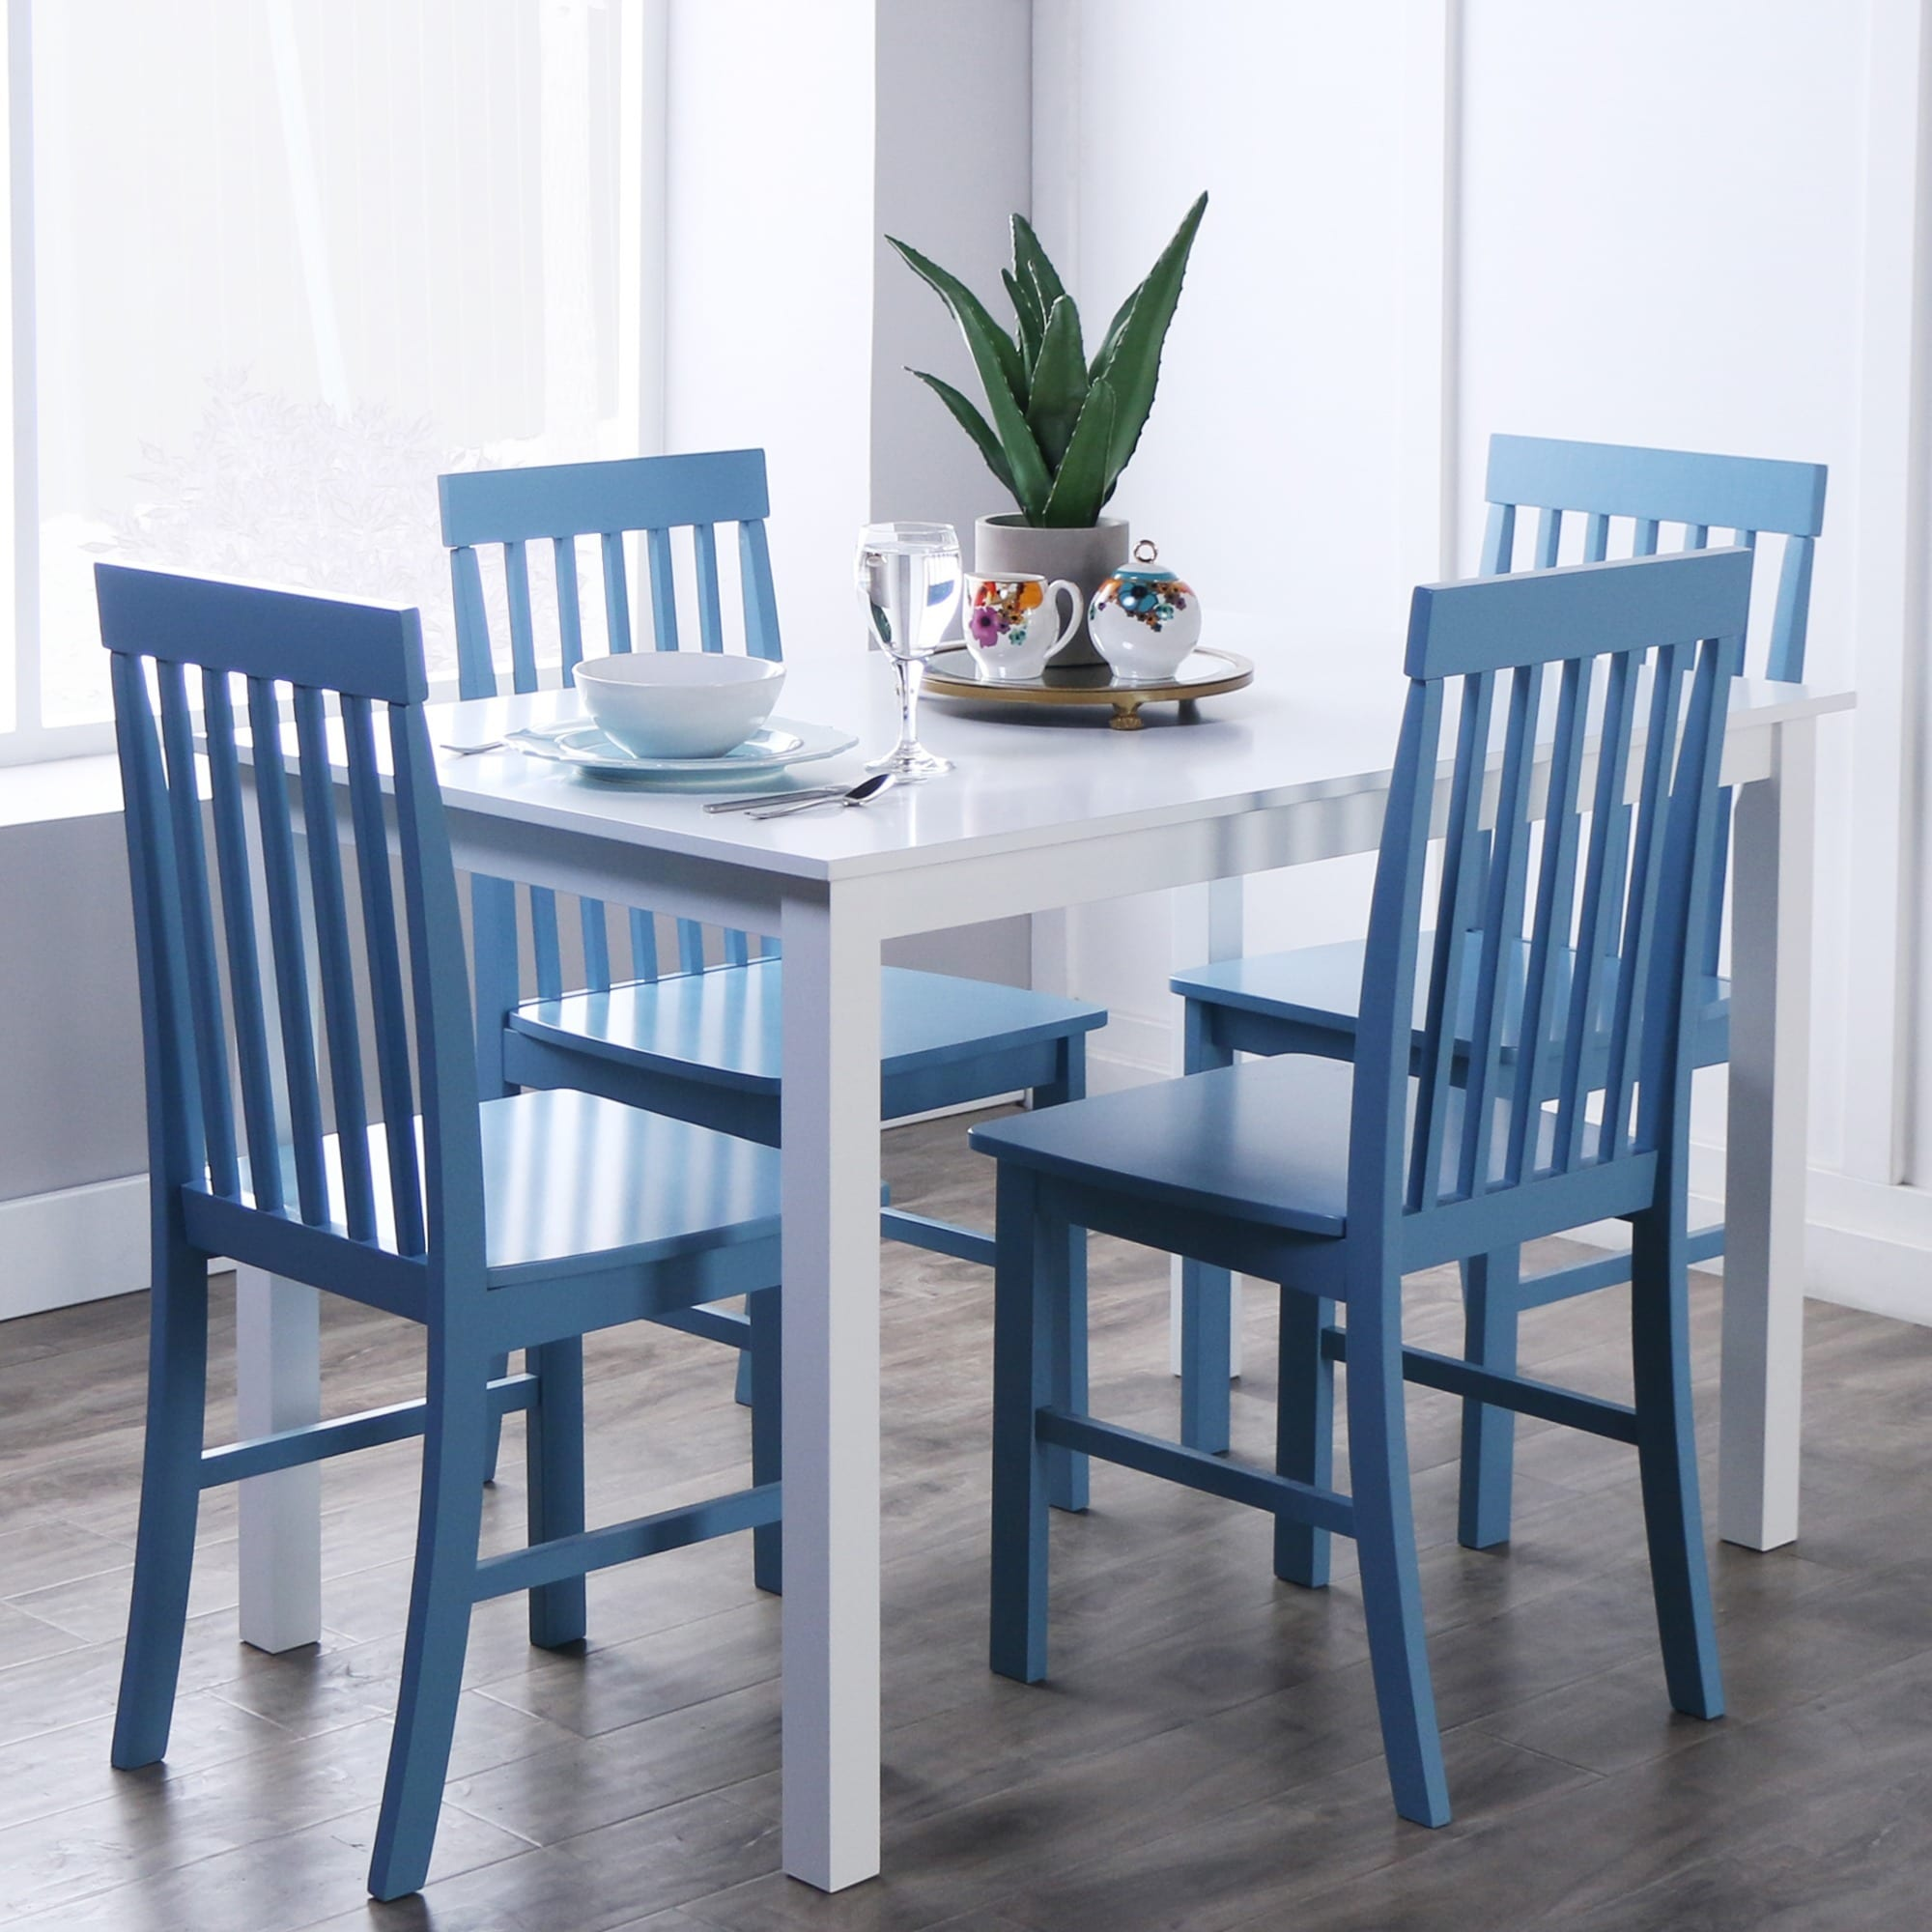 Dining Table Set White Table Room Blue Chairs Kitchen 5-Piece Room ...